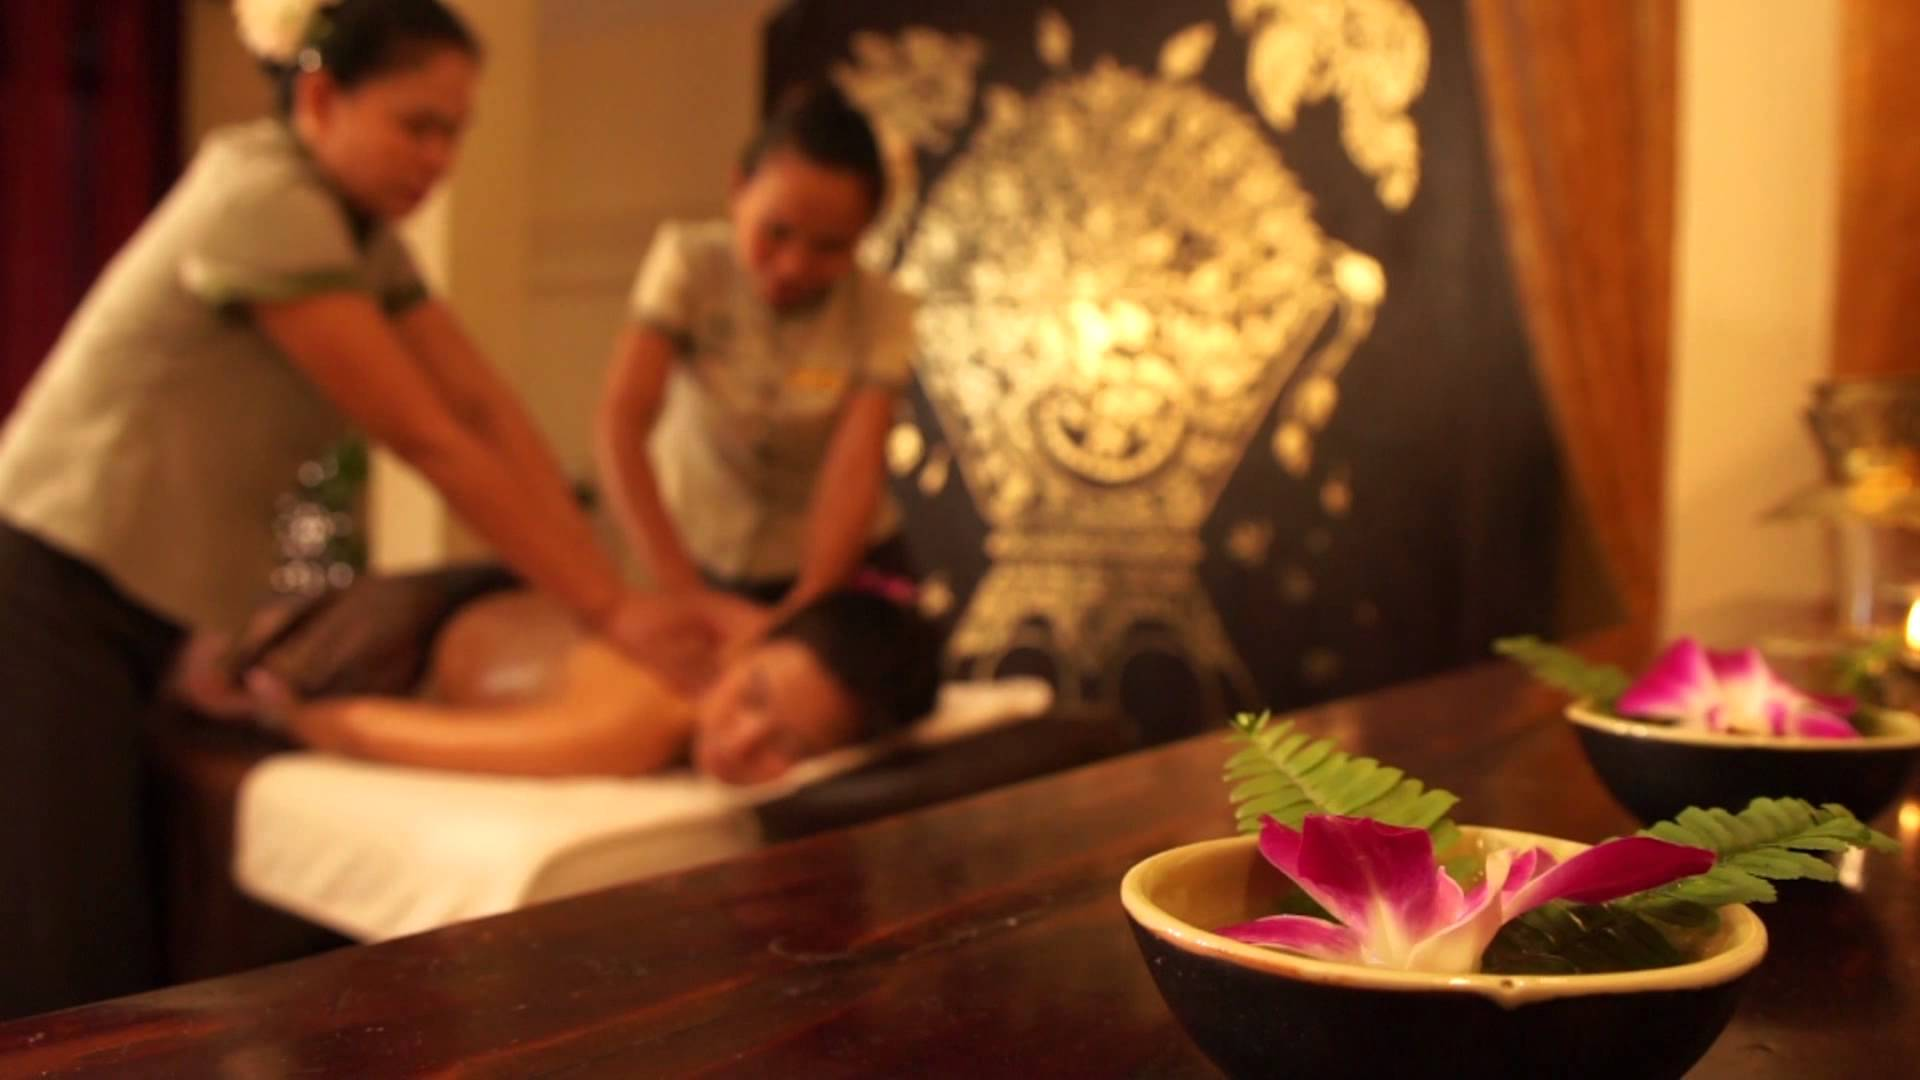 Thai Massage Wallpapers High Quality Download Free